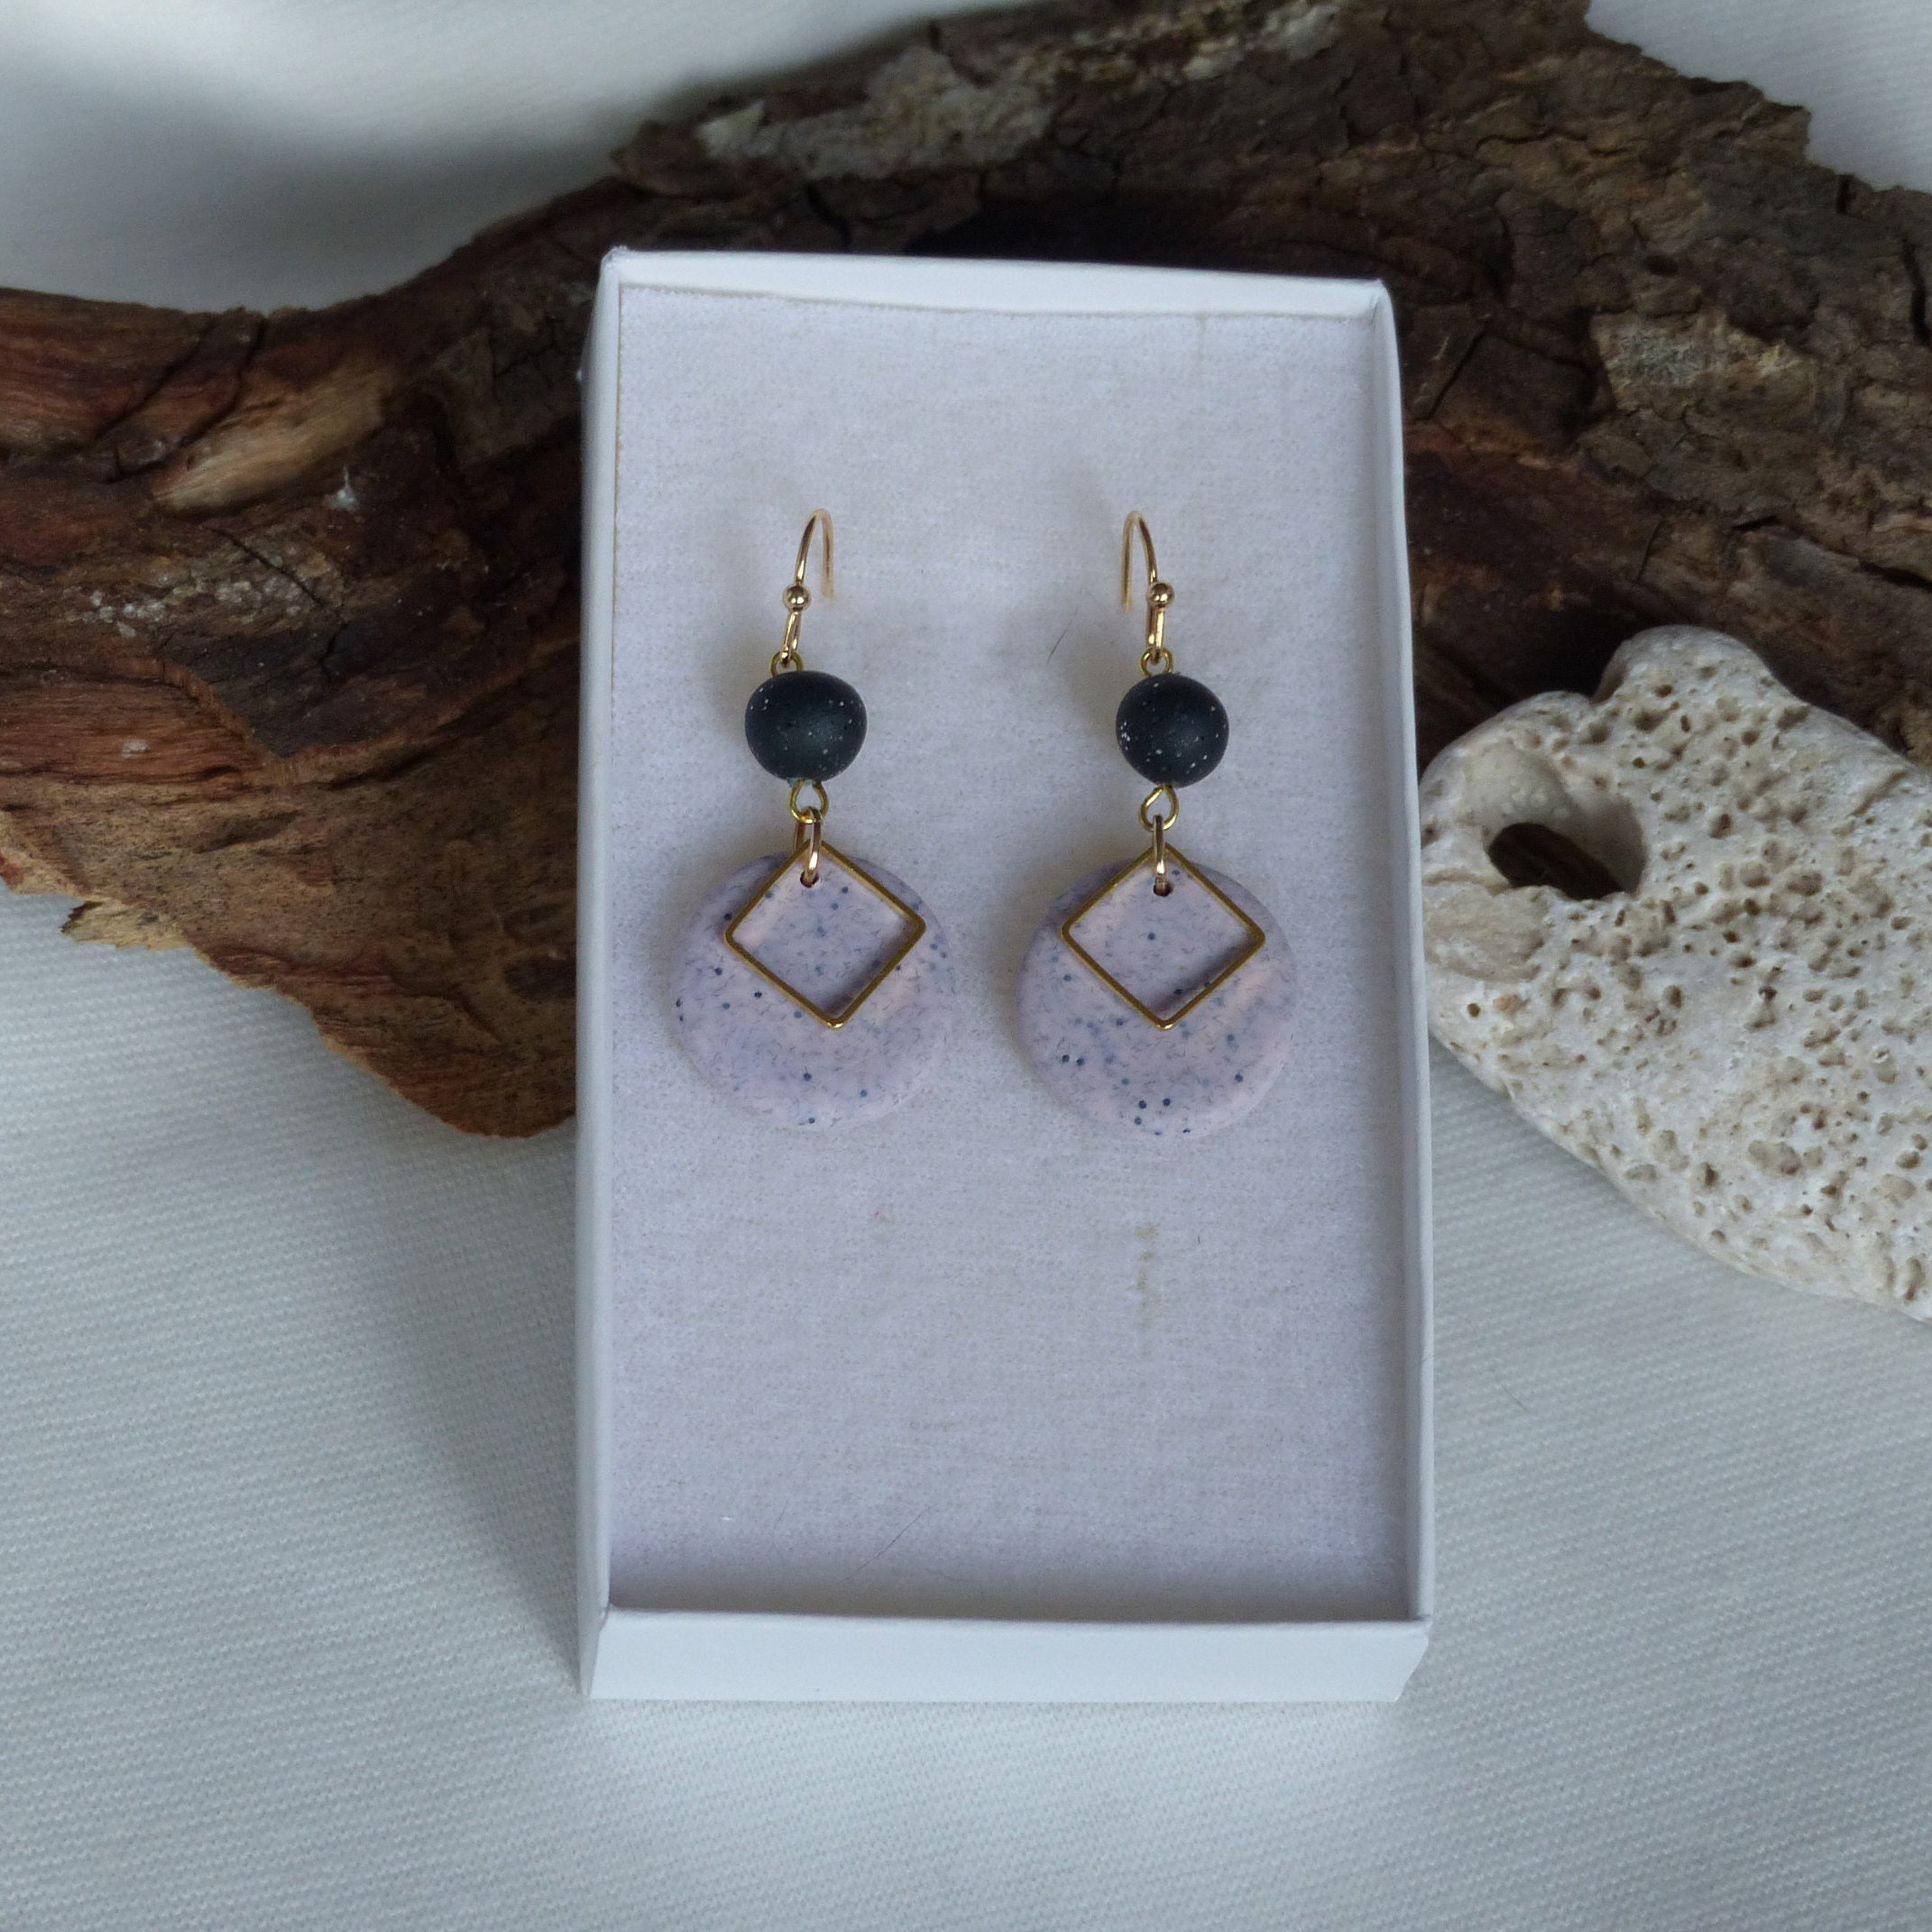 Floral pattern made of wire Hanging earrings gift for her flower in blackgold Handmade